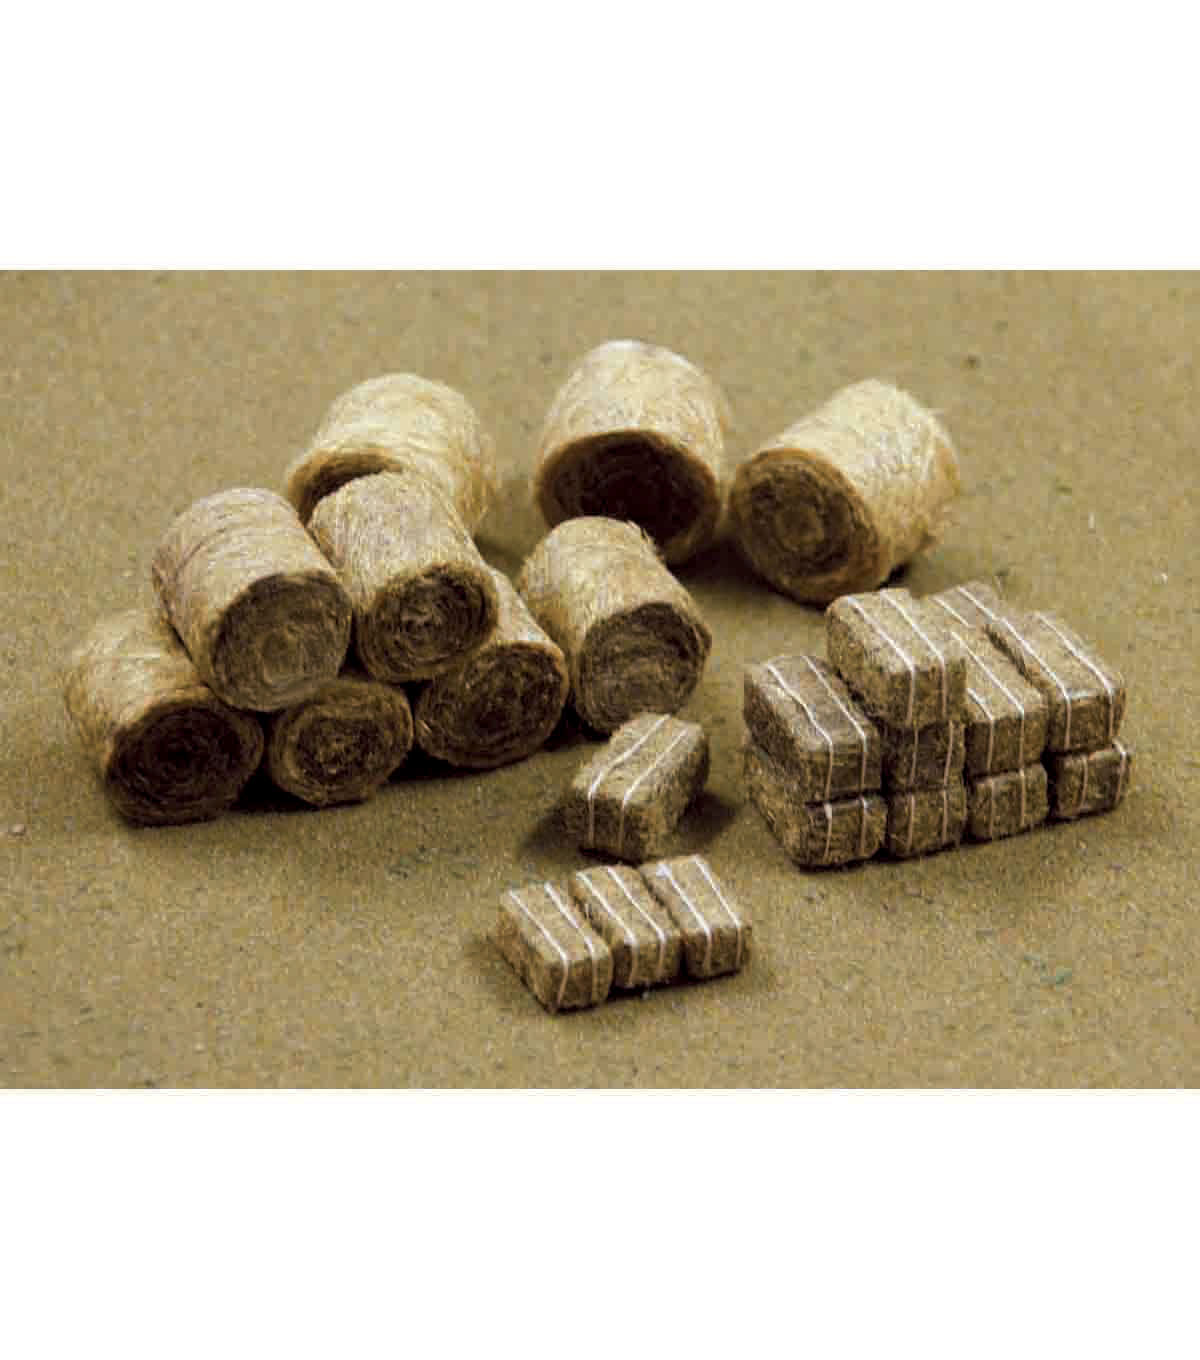 JTT Scenery Products Hay Bale Mix 21/Pkg-5 Round & 16 Rectangular